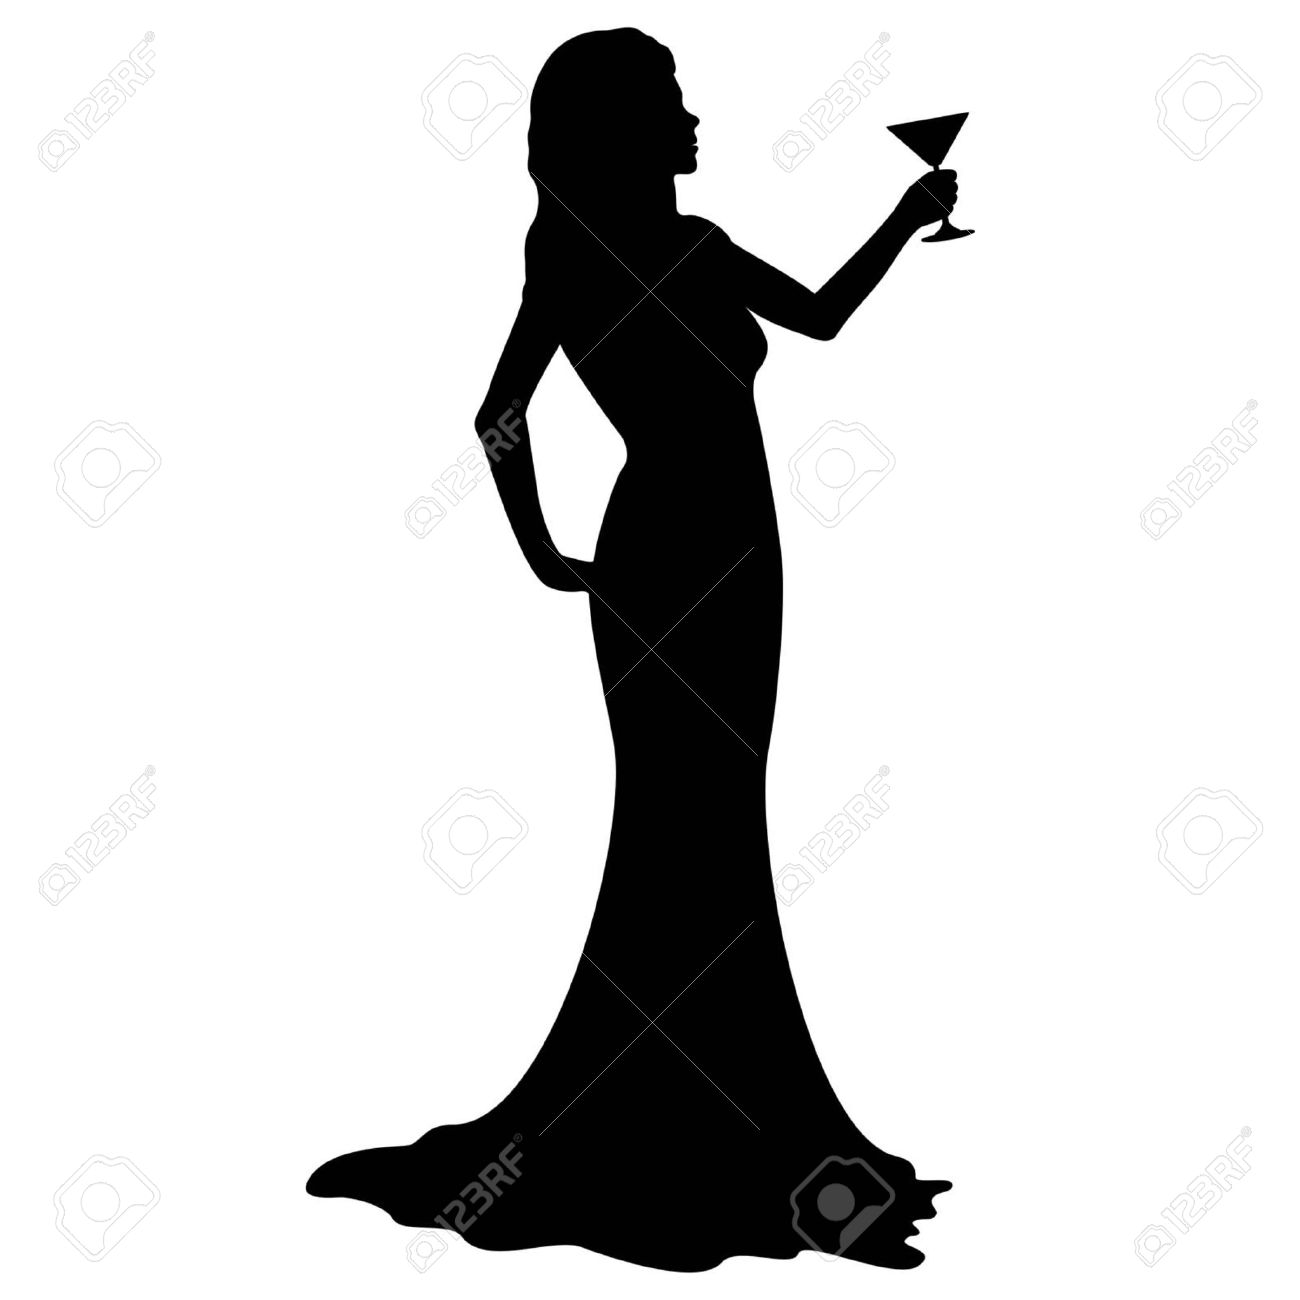 1300x1300 Illustration Silhouette Of A Woman In An Evening Dress, Holding